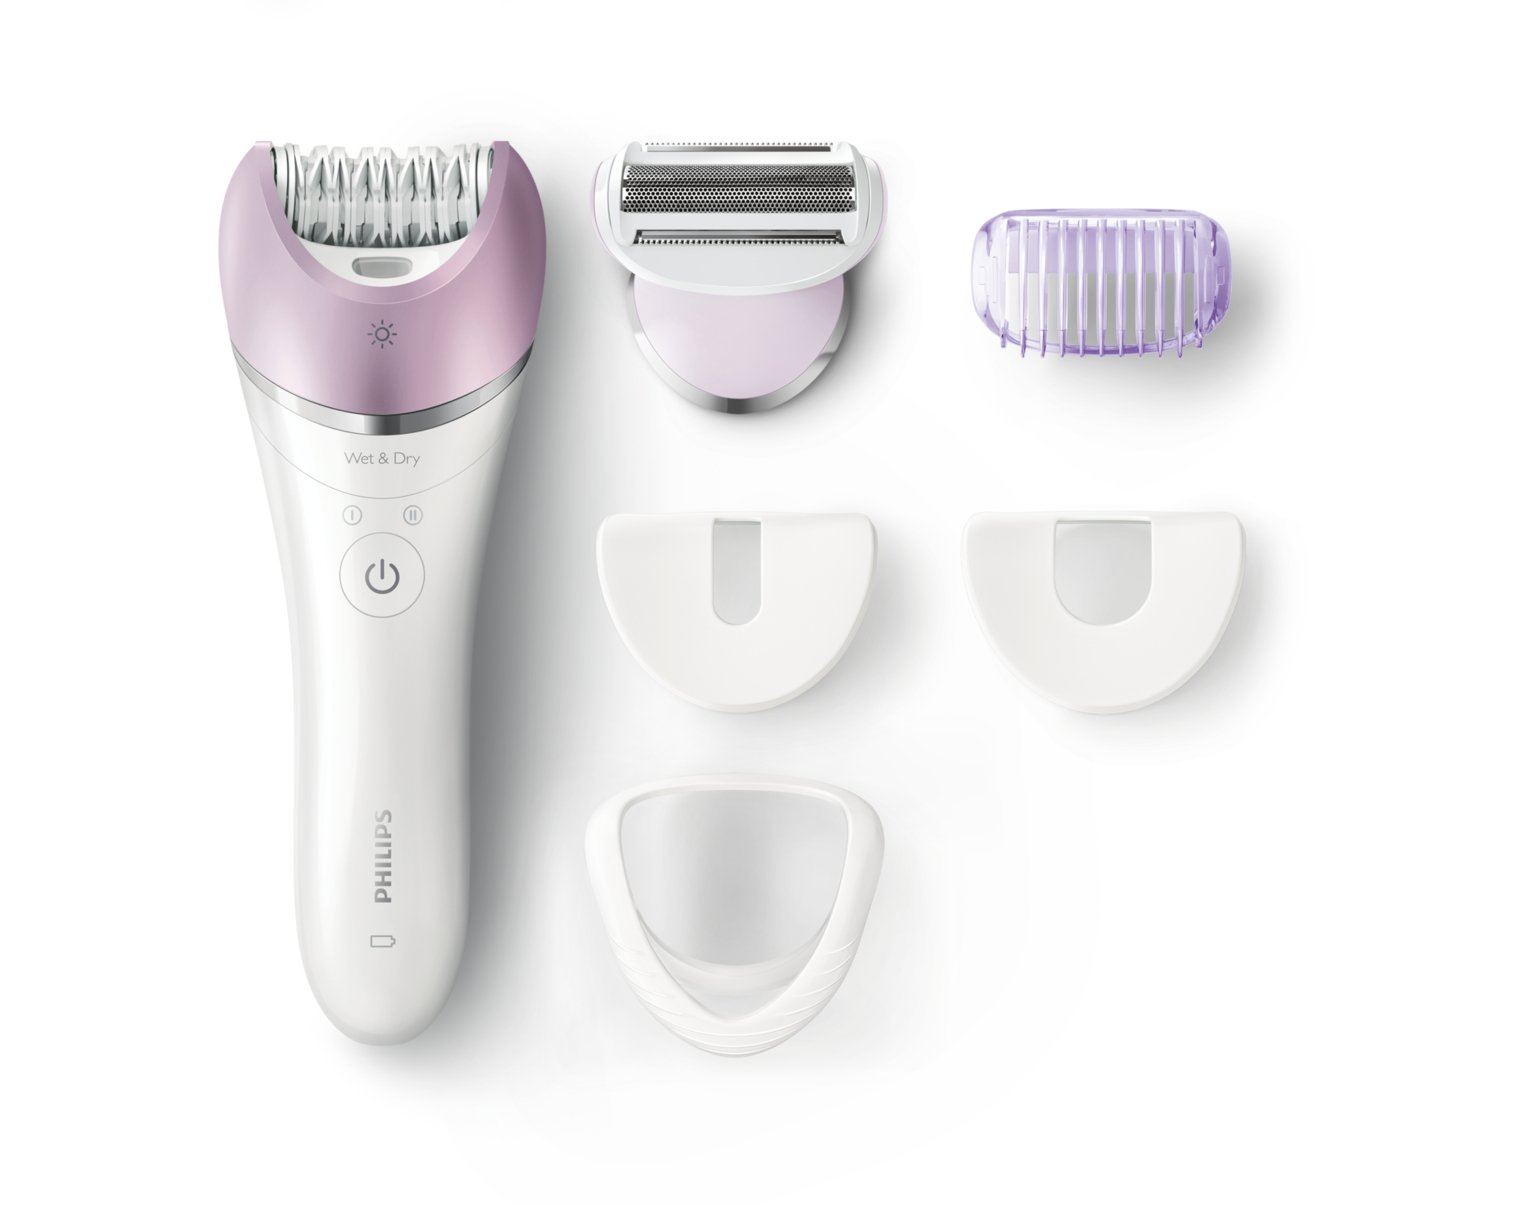 Philips Satinelle Advanced Wet and Dry Cordless Epilator